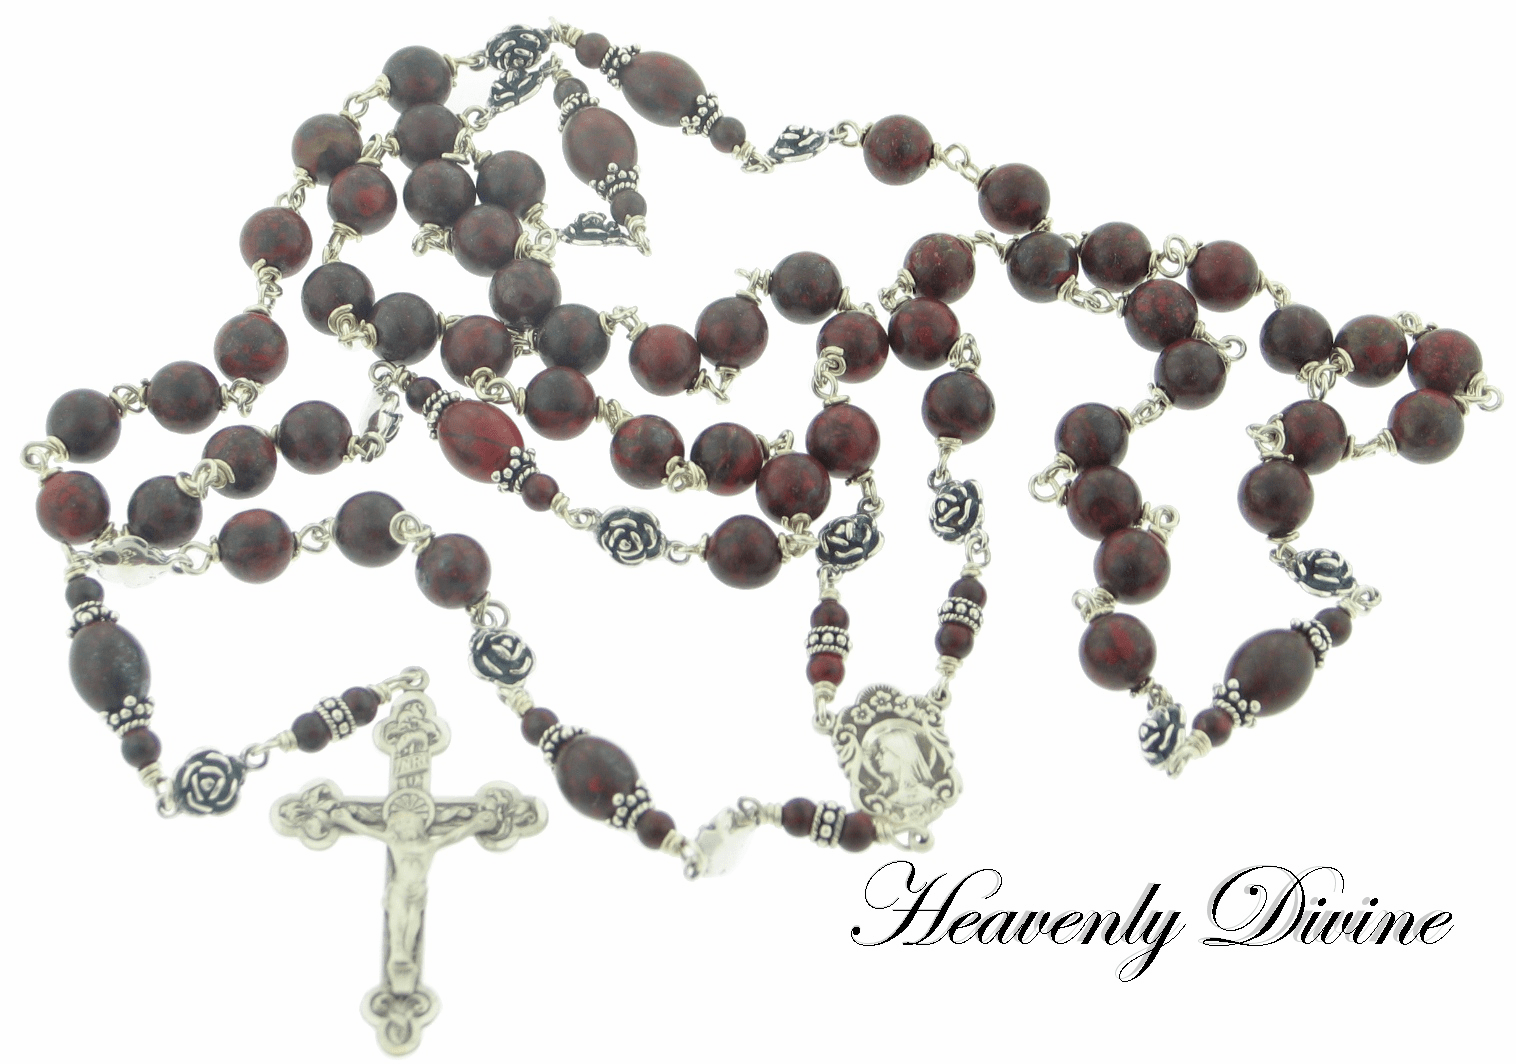 Handmade Brecciated Jasper and Sterling Silver Wire Wrapped by Heavenly Divine